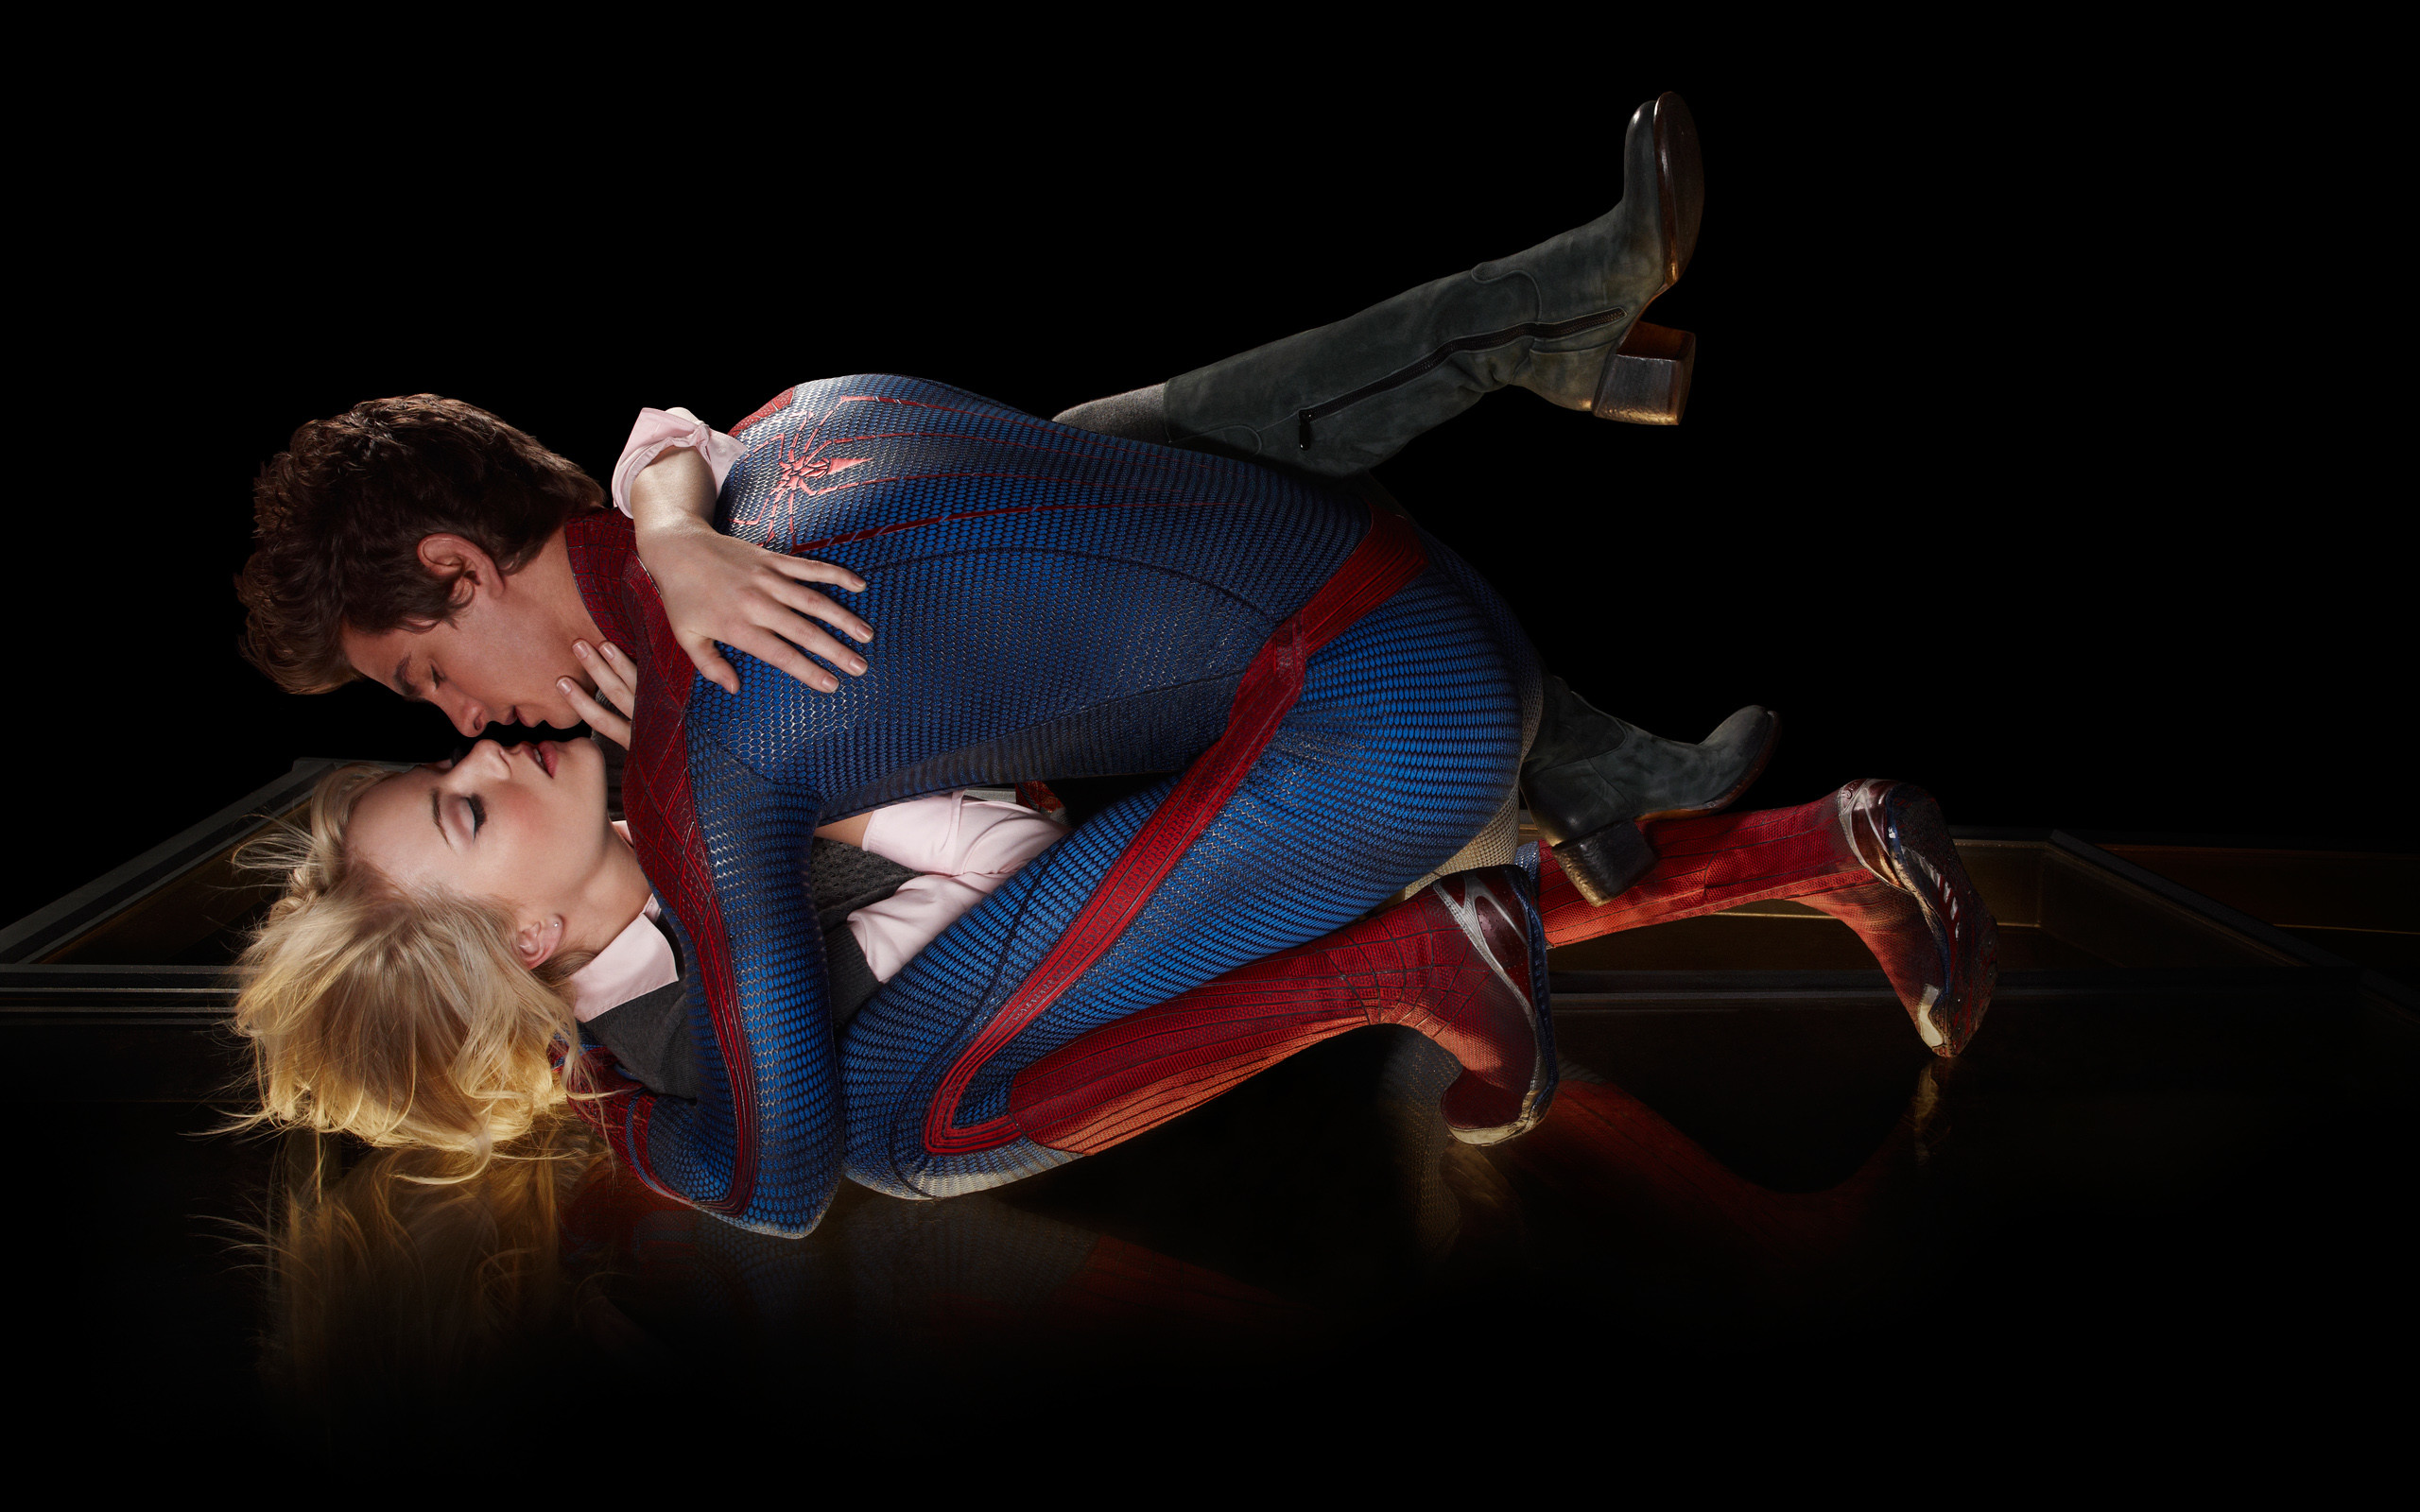 2560x1600 Tags: Love Amazing Spider Kiss. Description: Download Amazing Spider Man  Love Kiss wallpaper from the ...